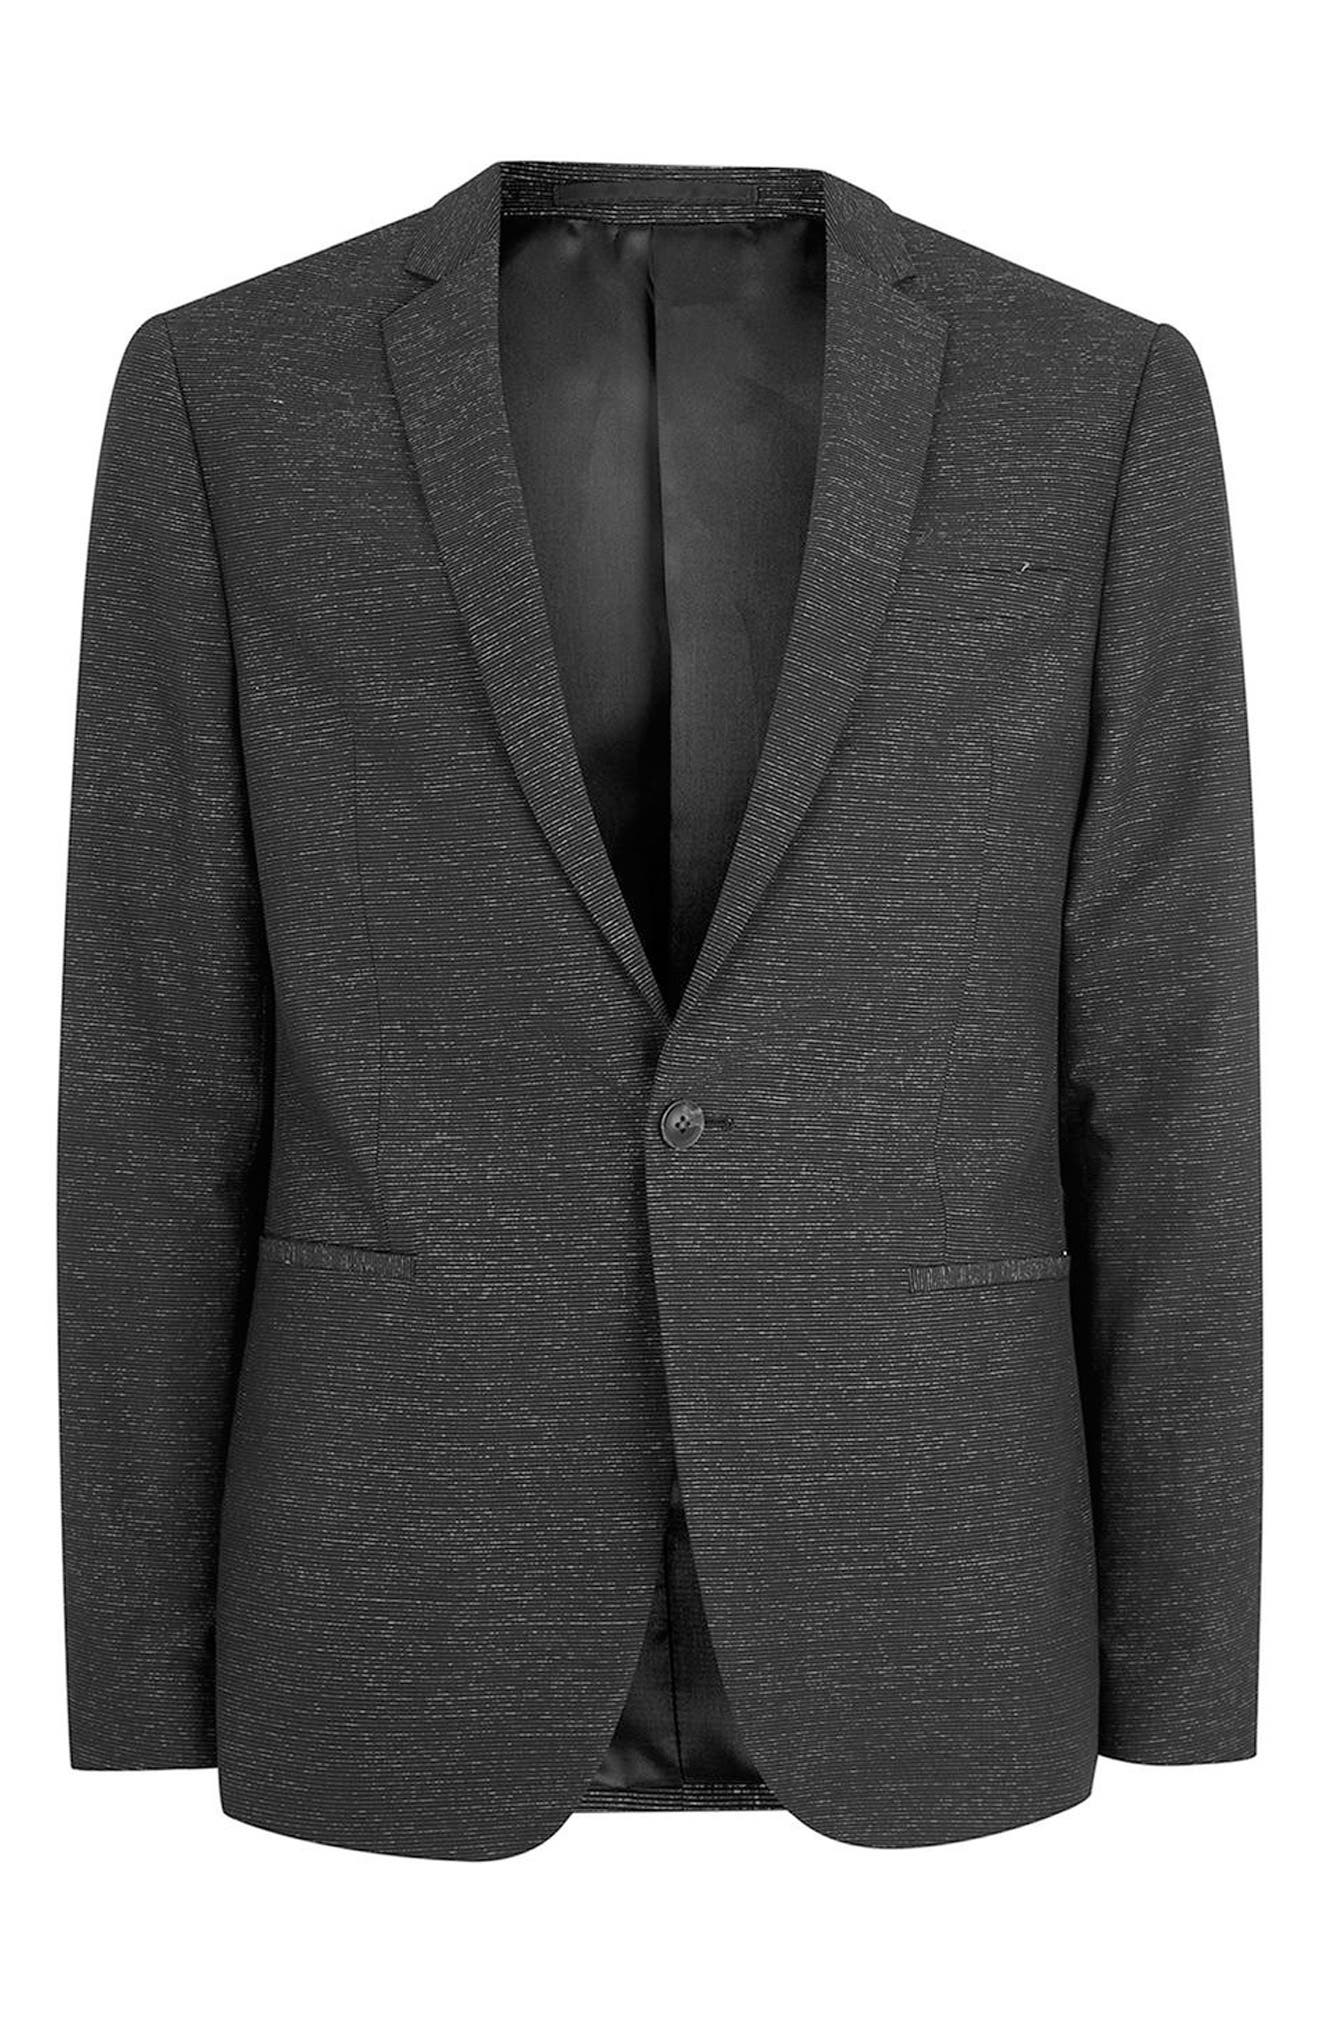 Skinny Fit Stripe Suit Jacket,                             Alternate thumbnail 4, color,                             001